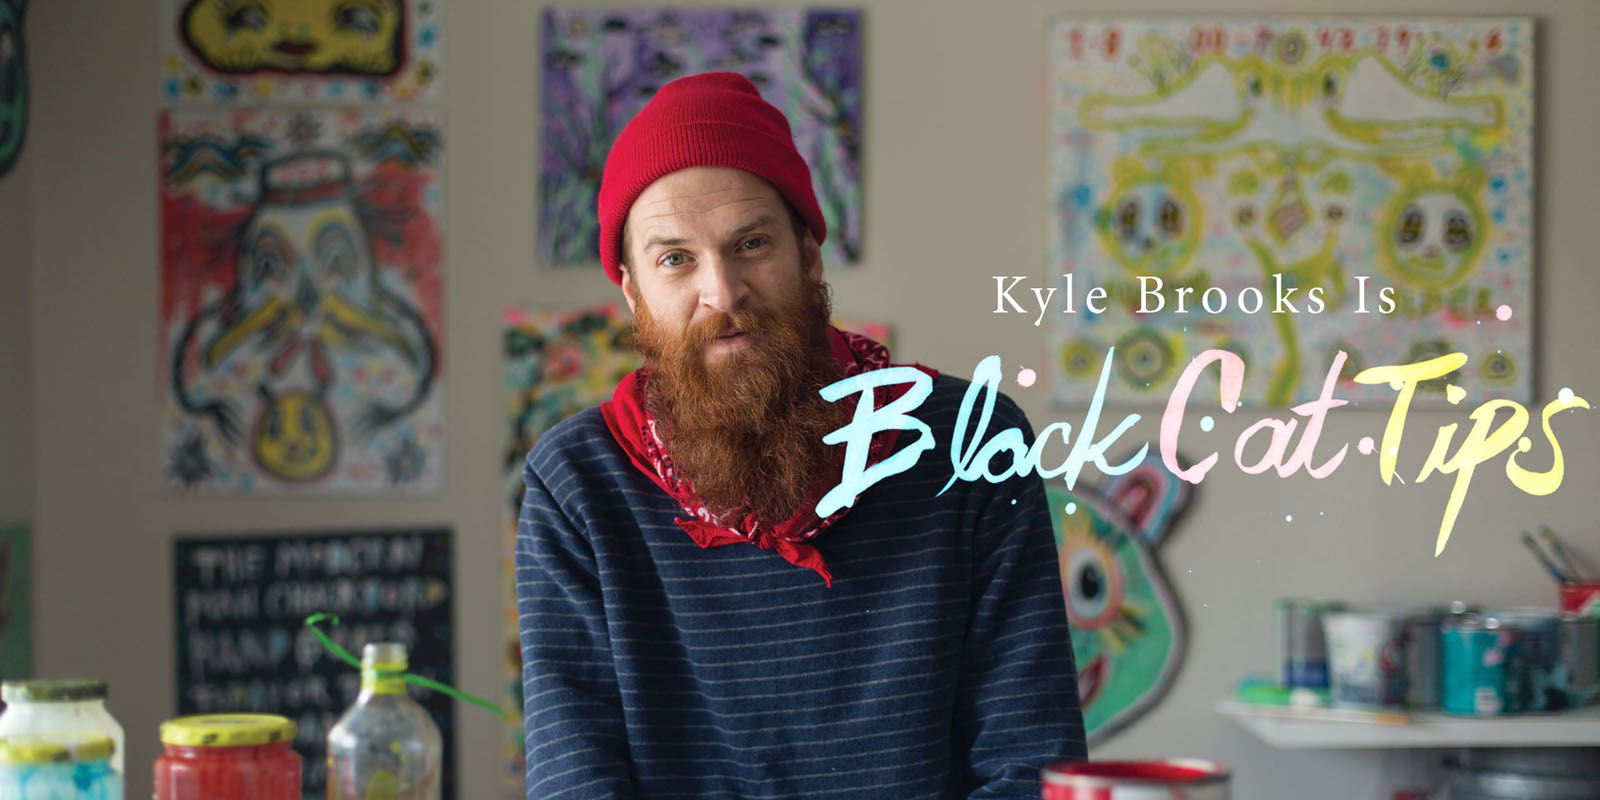 Watch a film about Kyle BlackCatTips Brooks